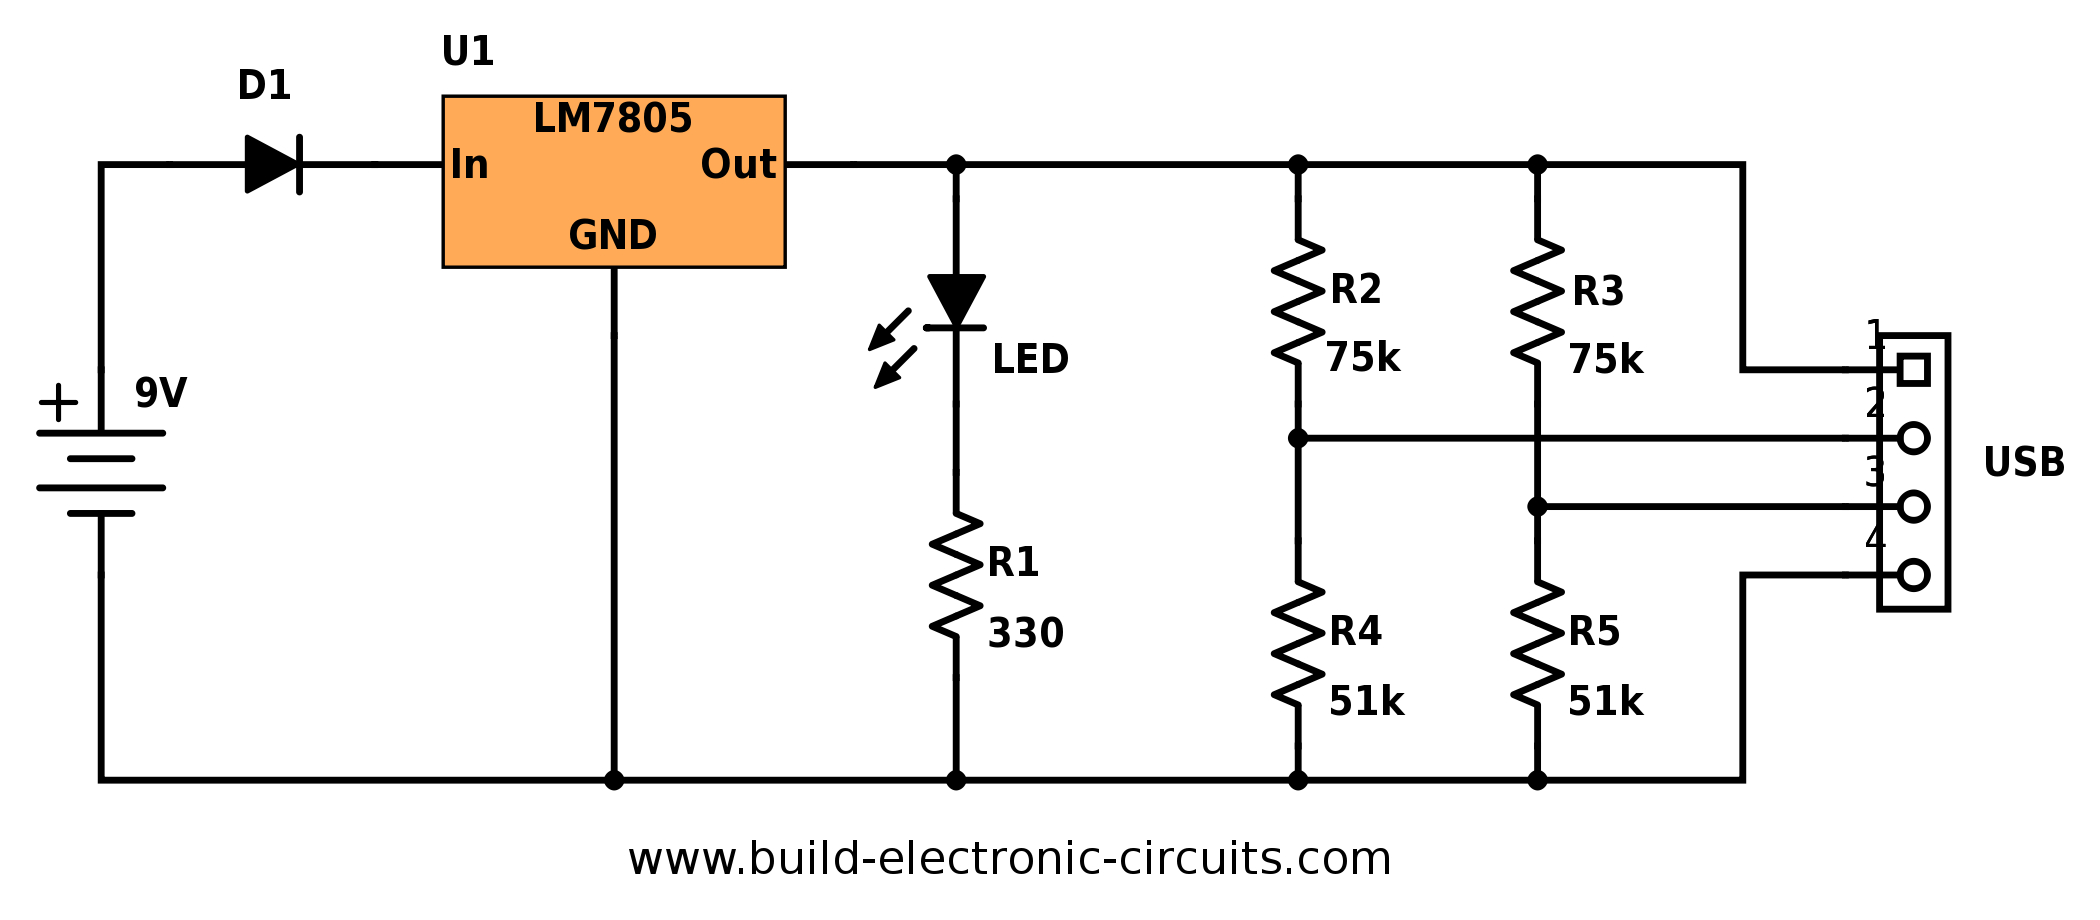 Portable Usb Charger Circuit - Build Electronic Circuits - Usb Charger Wiring Diagram Quick